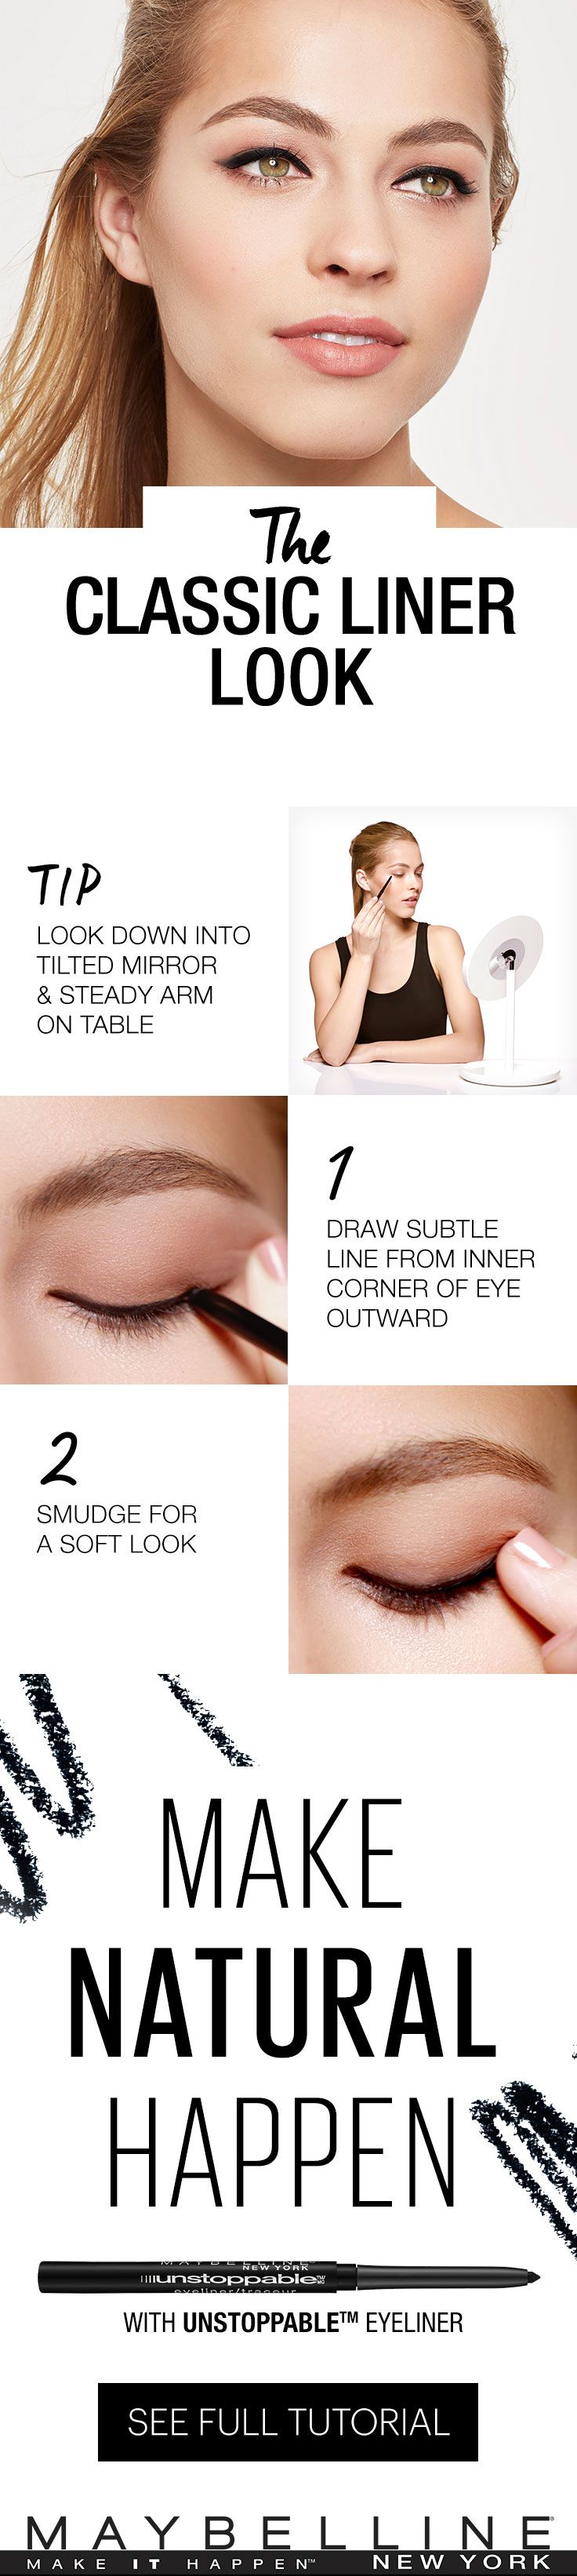 An easy DIY tutoral to the classic eyeliner look. Tips and tricks for eyeliner beginners. Fun with make up. #eyeliner @stylexpert